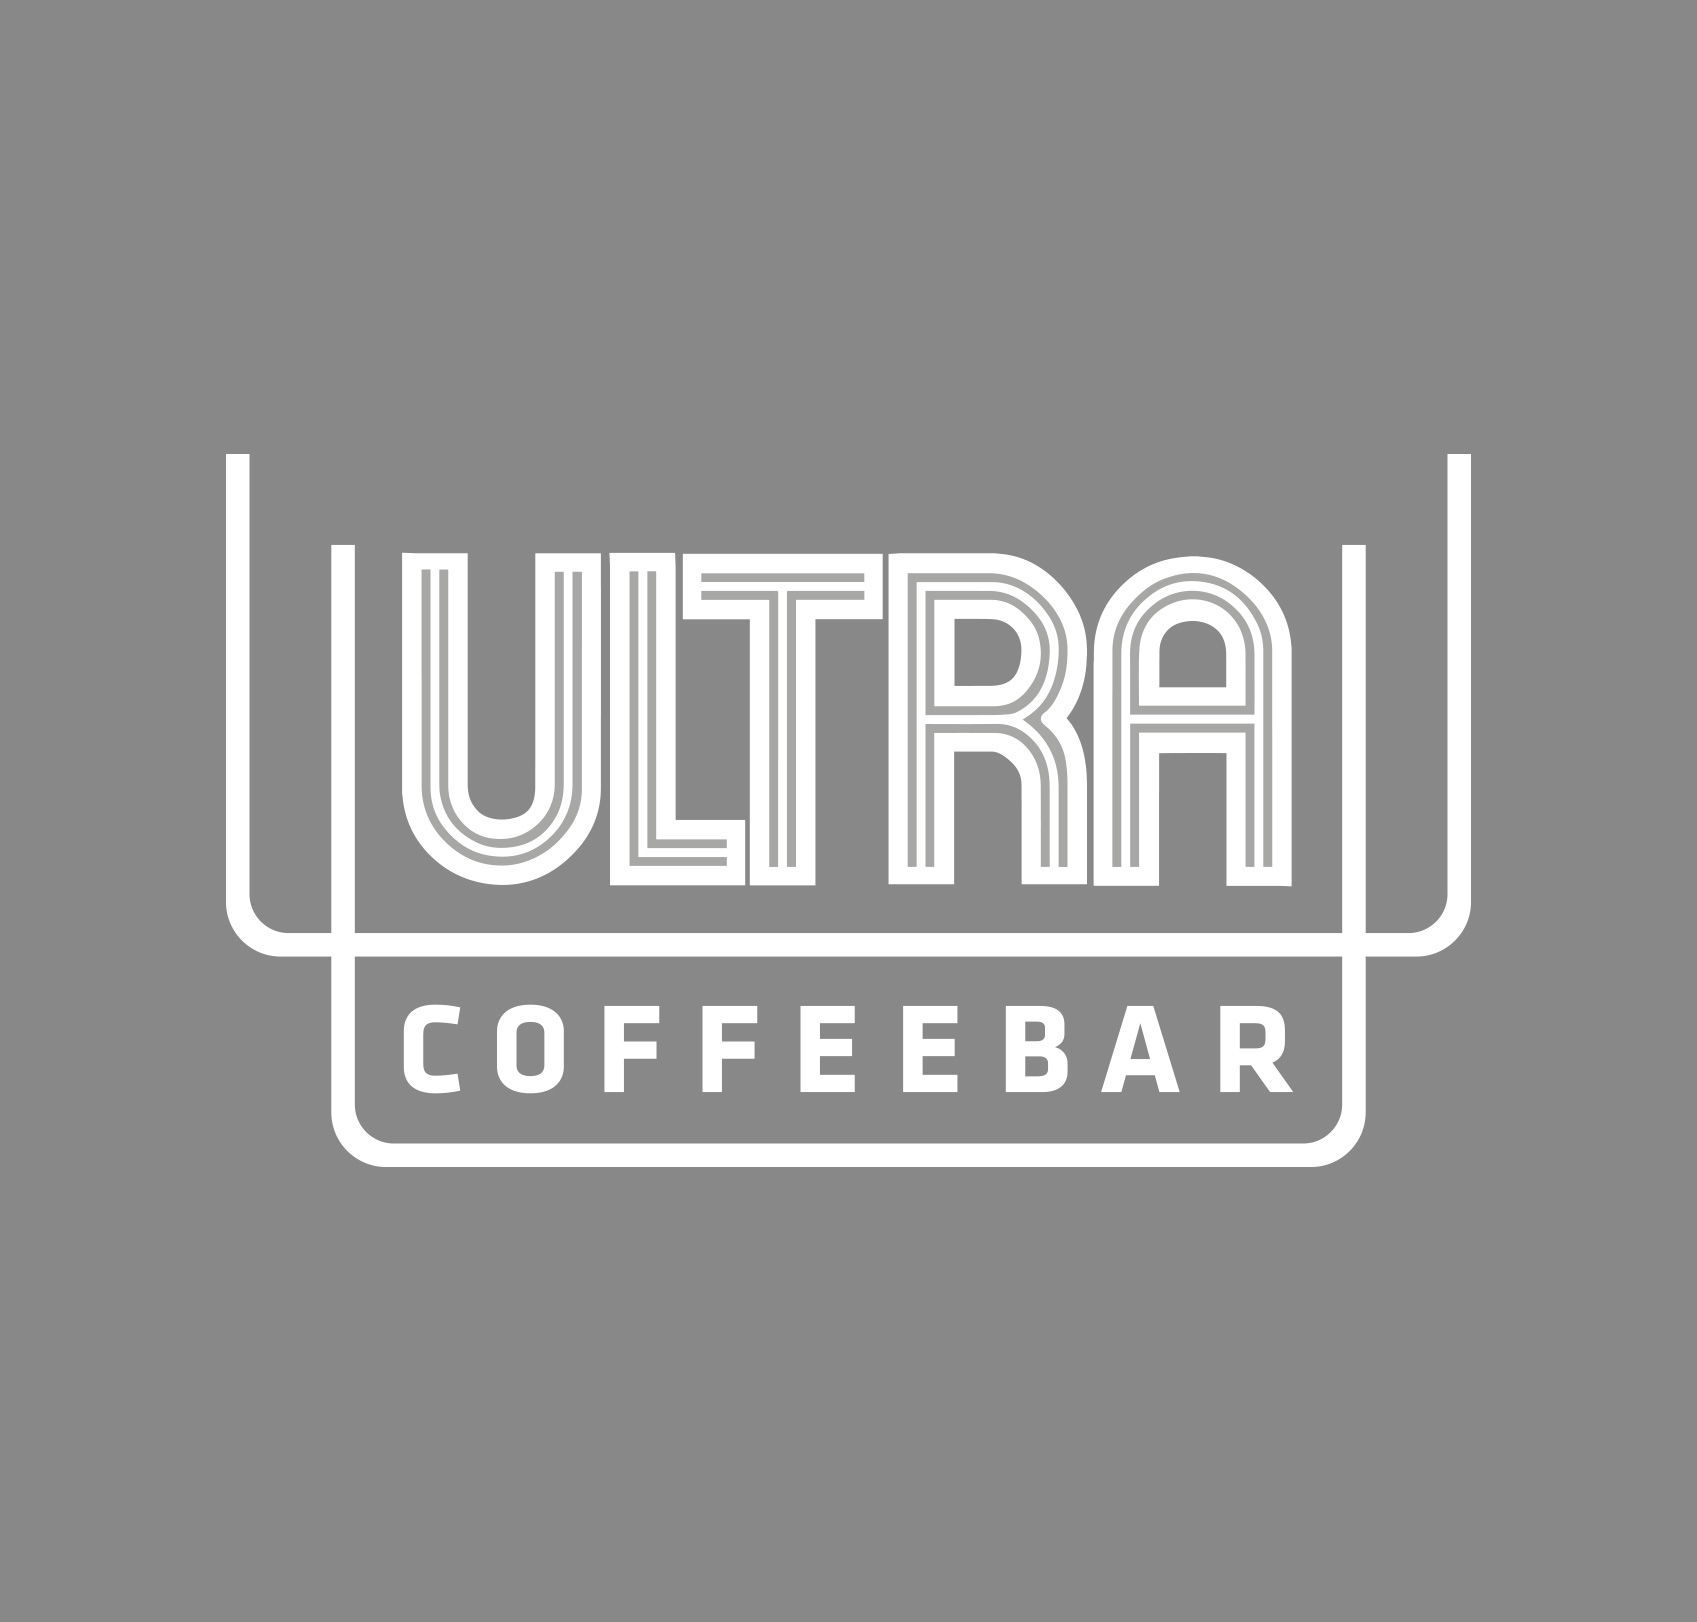 Final Mark - Ultra Coffeebar